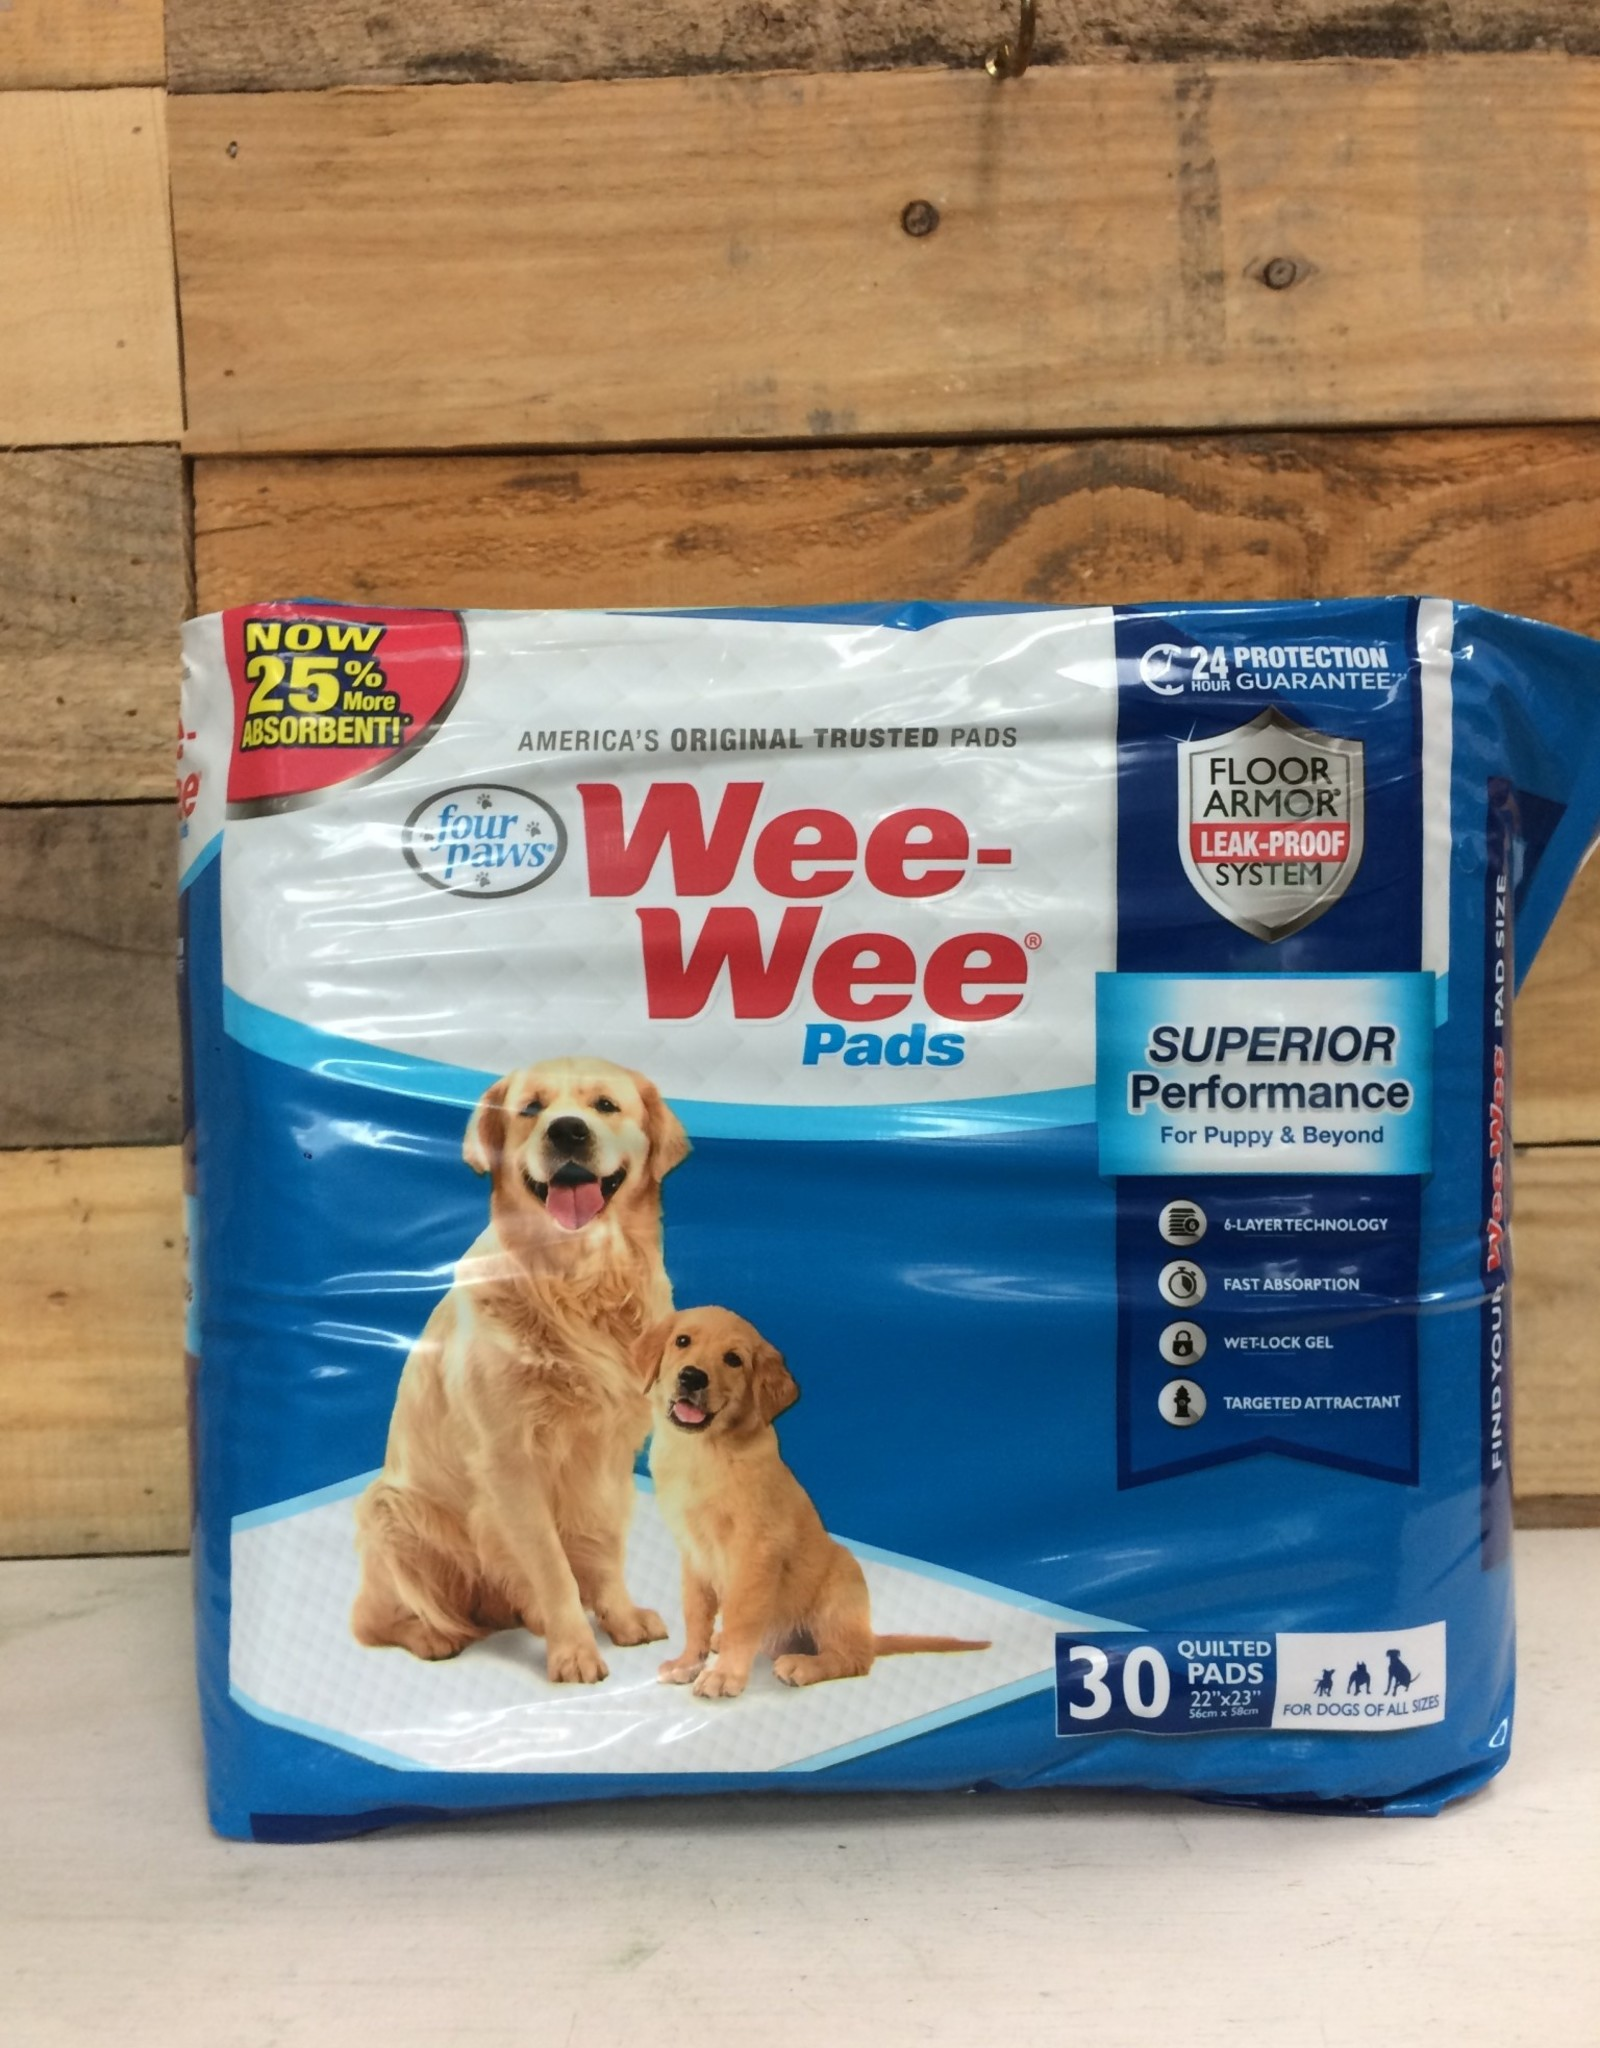 Four paws wee wee pads 30ct